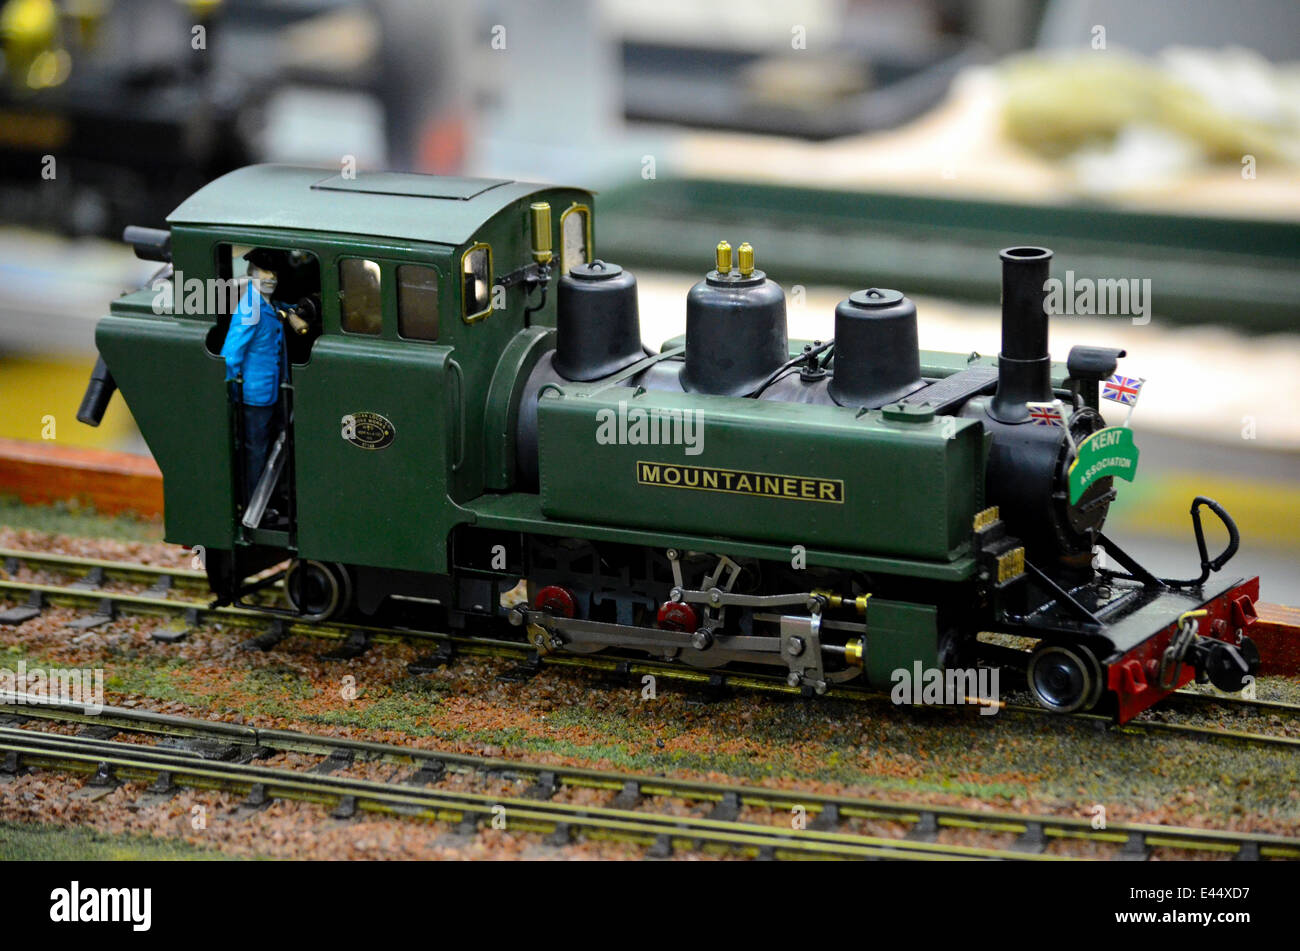 model train green steam railway engine with driver in cab stock